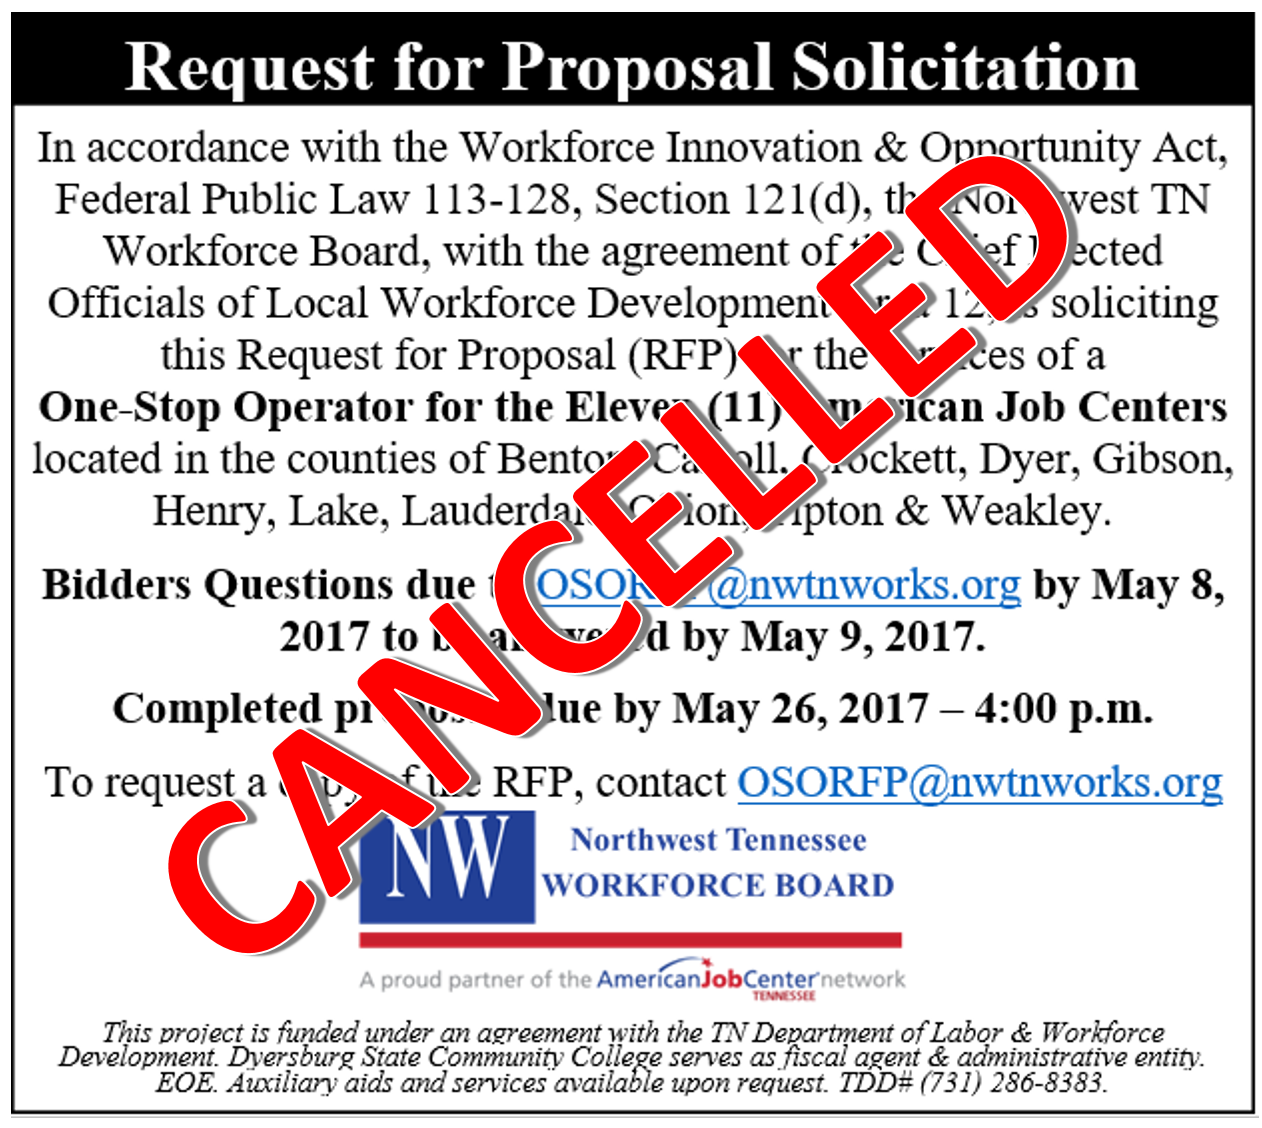 OSO Cancelled May 2017